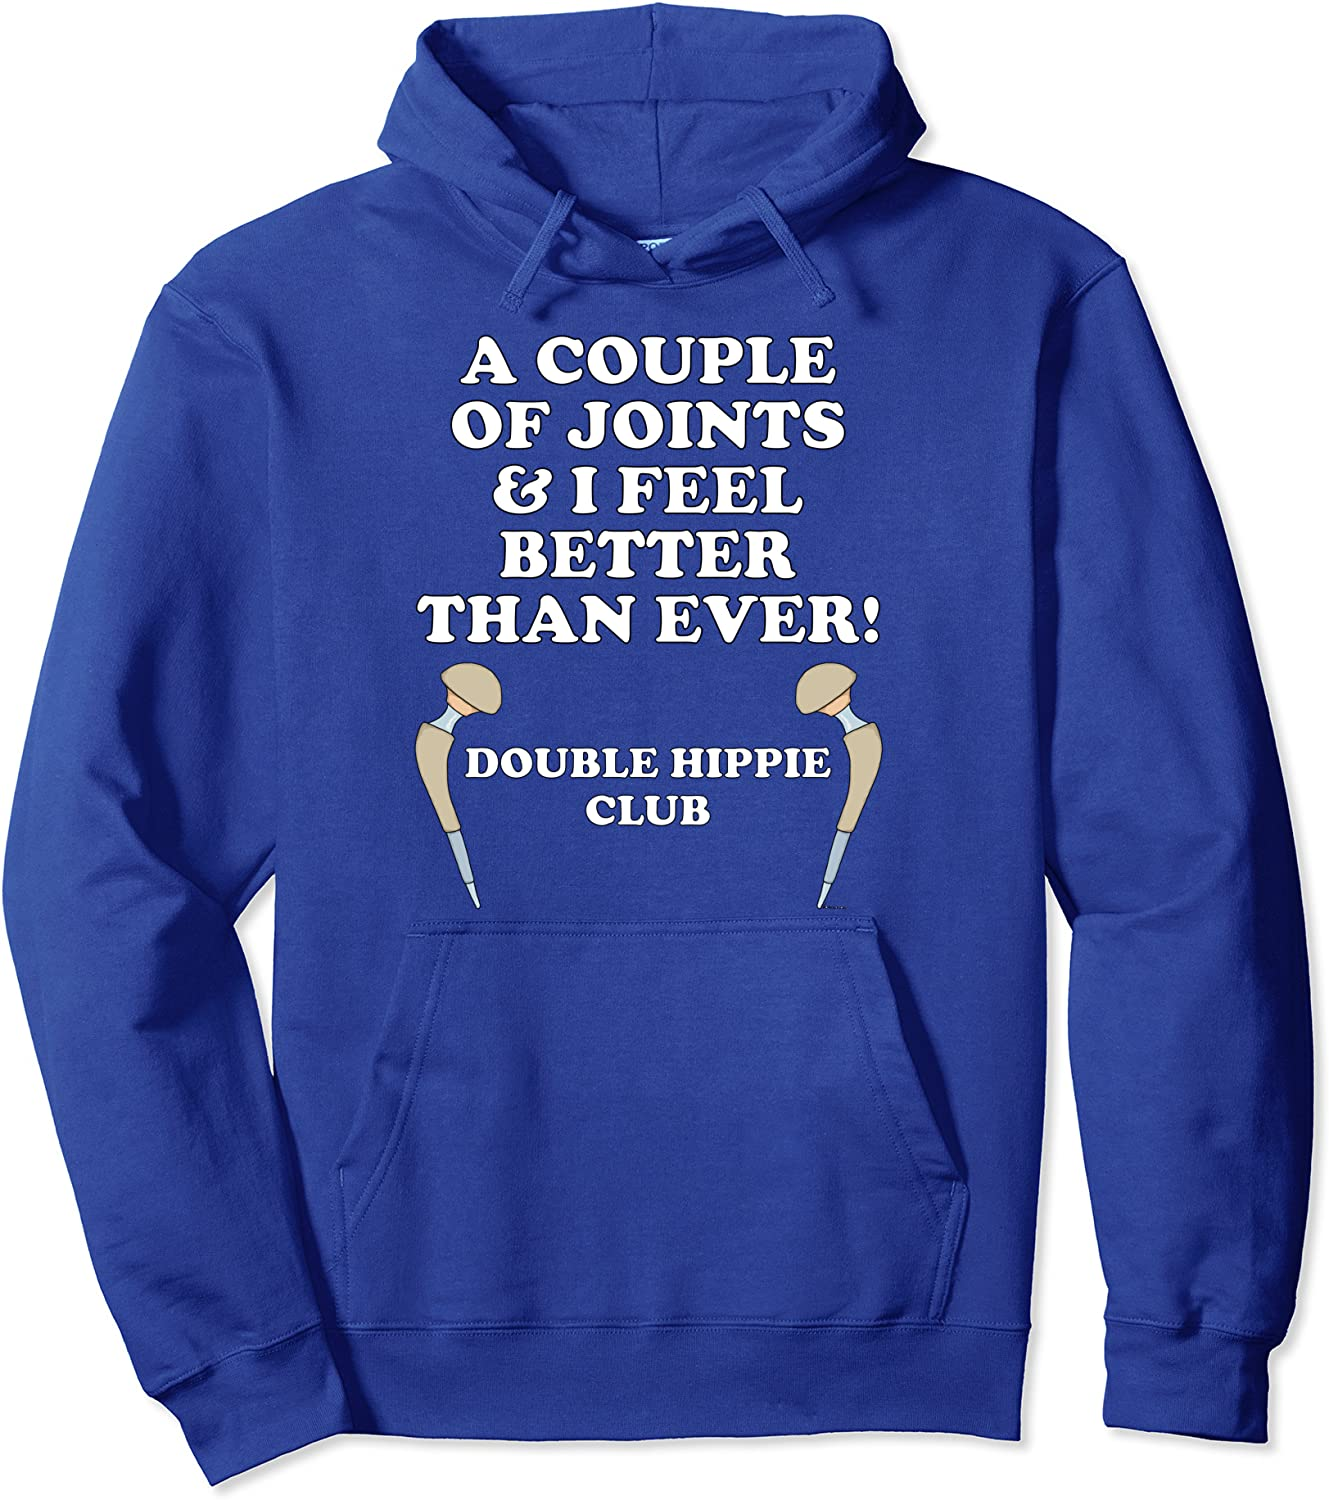 Double Hippie Club COUPLE OF JOINTS Hoodie